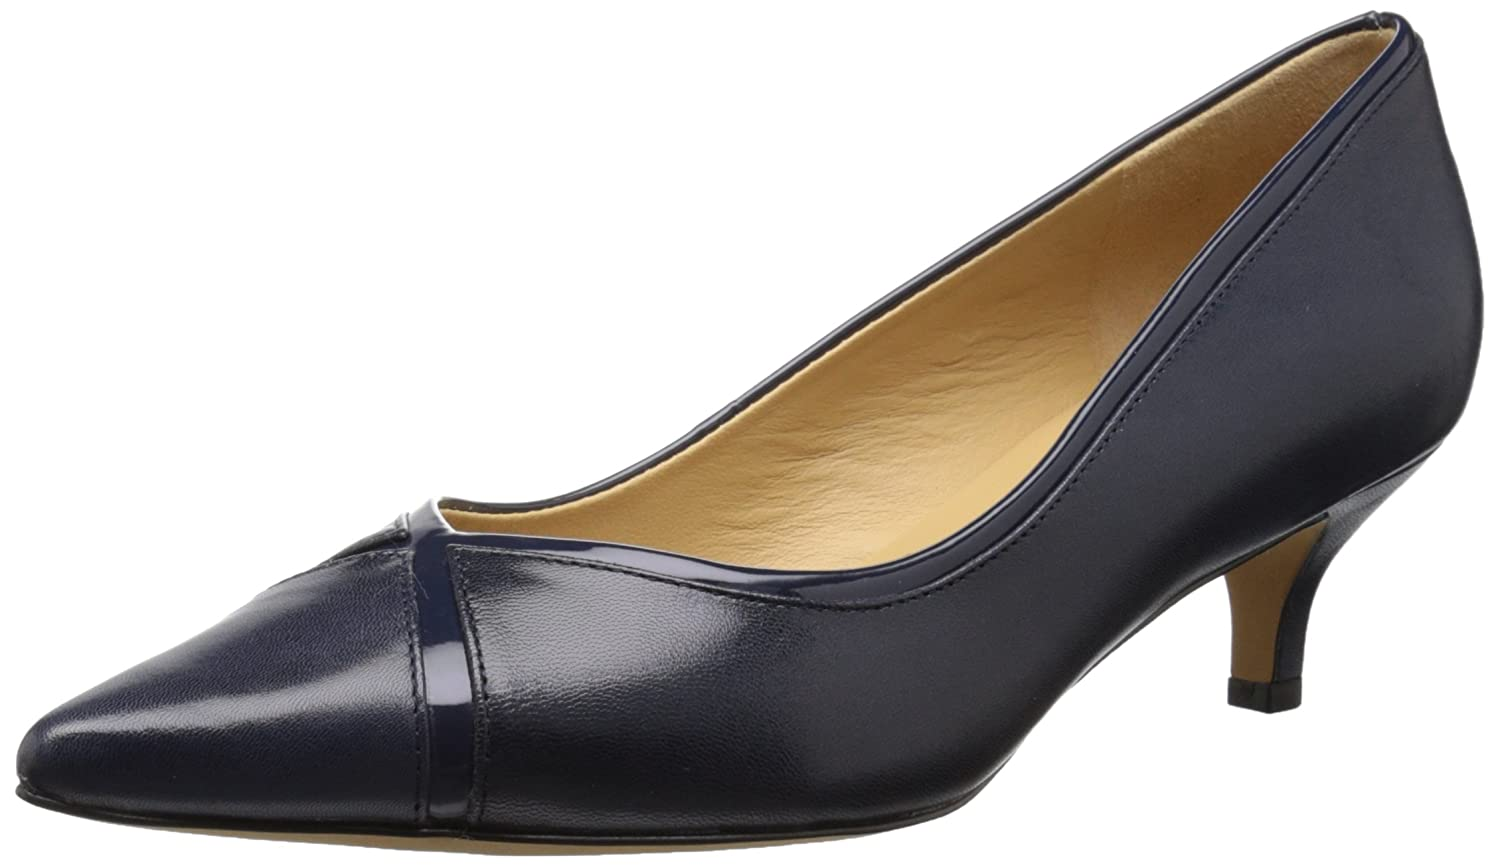 Trotters Women's Kelsey Dress Pump B011EZH3RW 9 W US|Navy